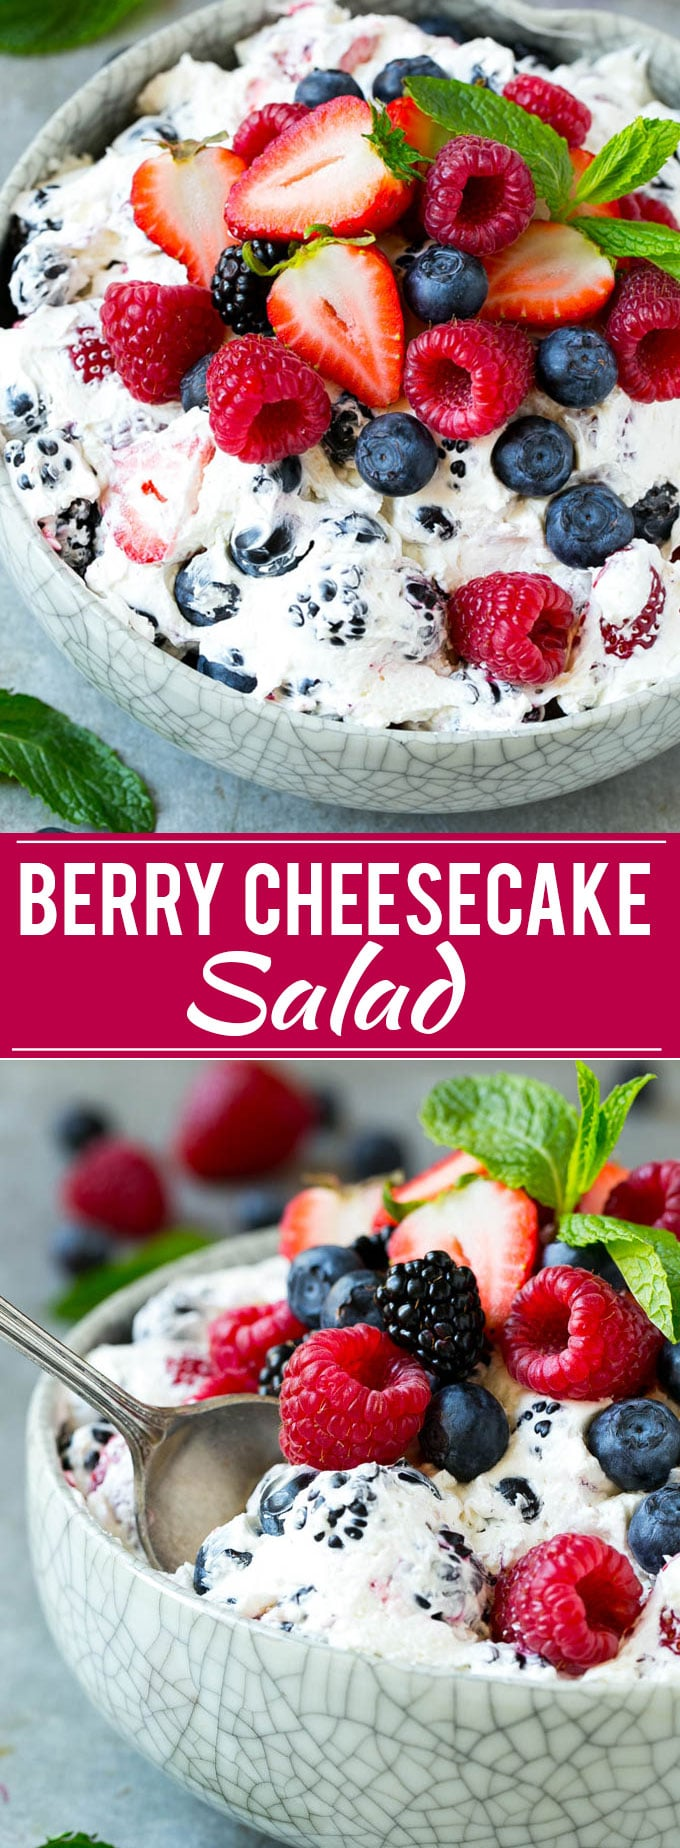 Berry Cheesecake Salad Recipe | Fruit Salad | Berry Fruit Salad | Cheesecake Salad